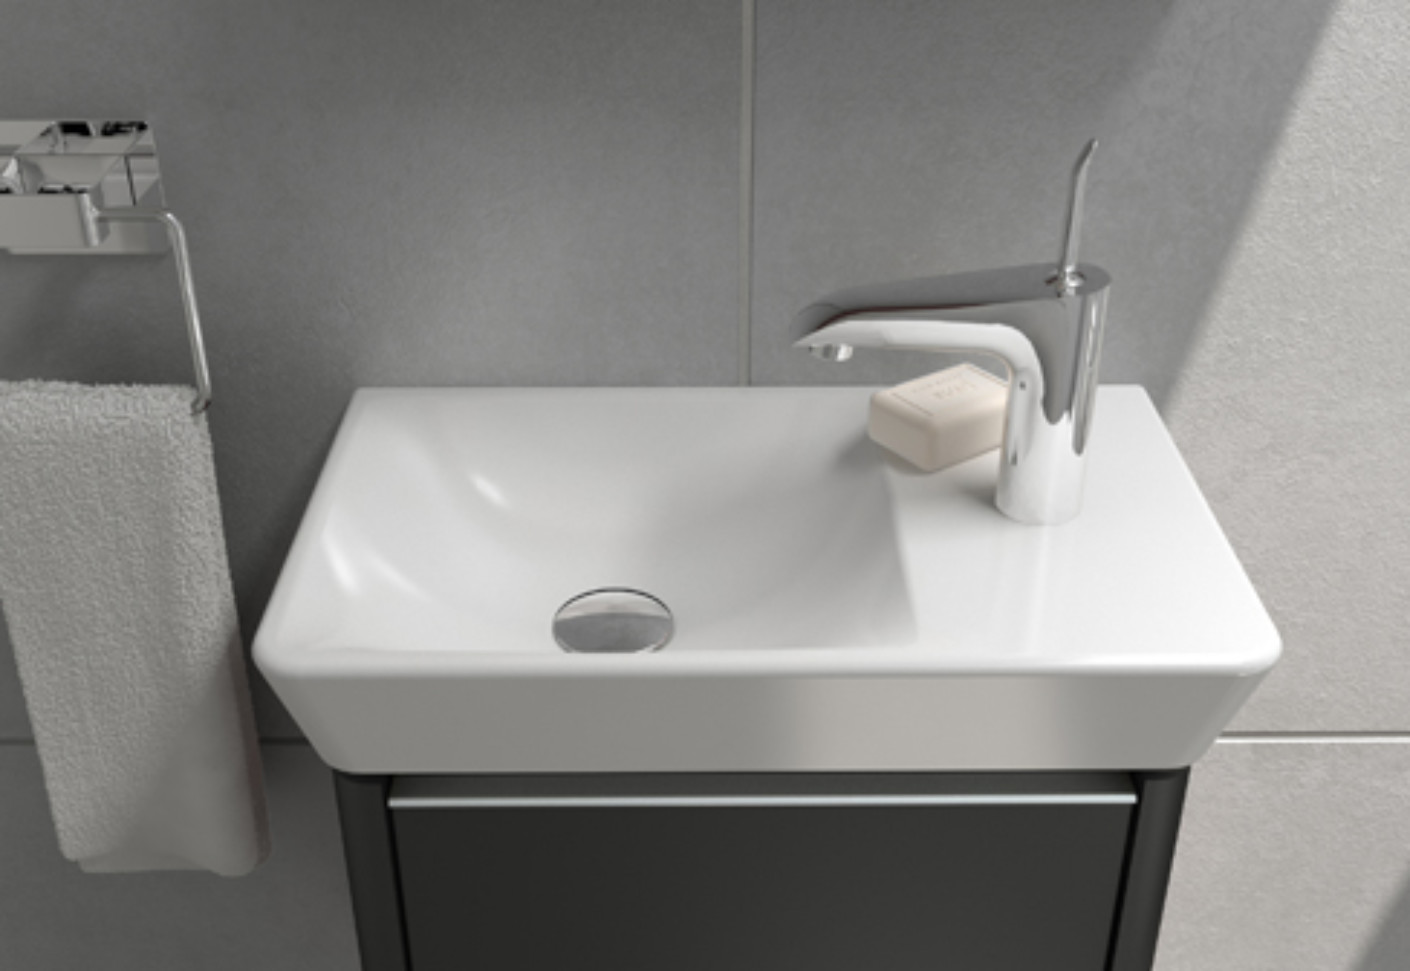 T4 hand washbasin by VitrA Bathroom  STYLEPARK